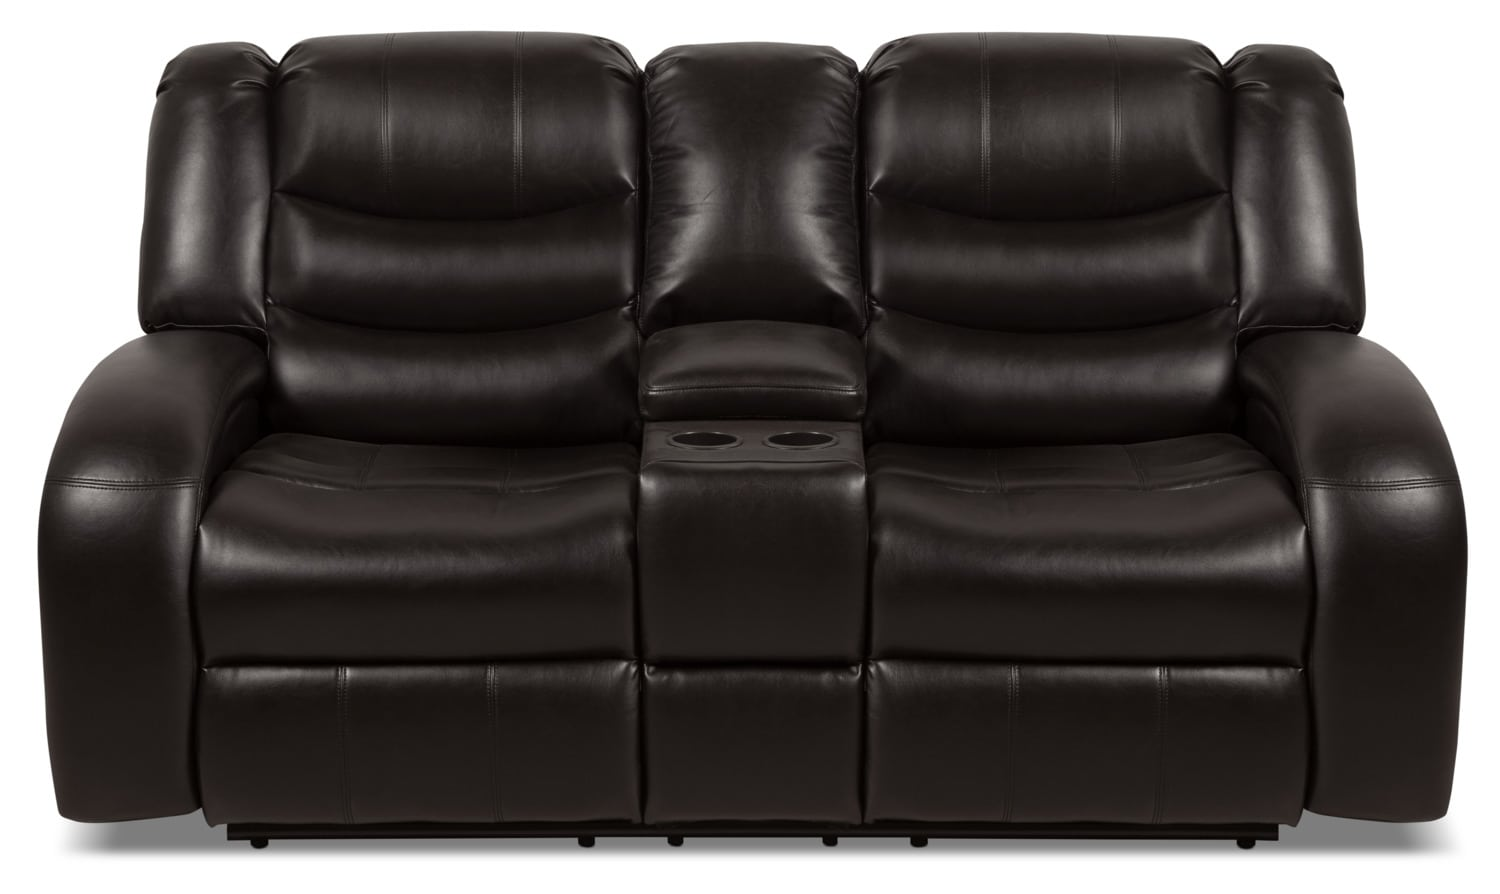 Angus Leather Look Fabric Reclining Loveseat Dark Brown The Brick